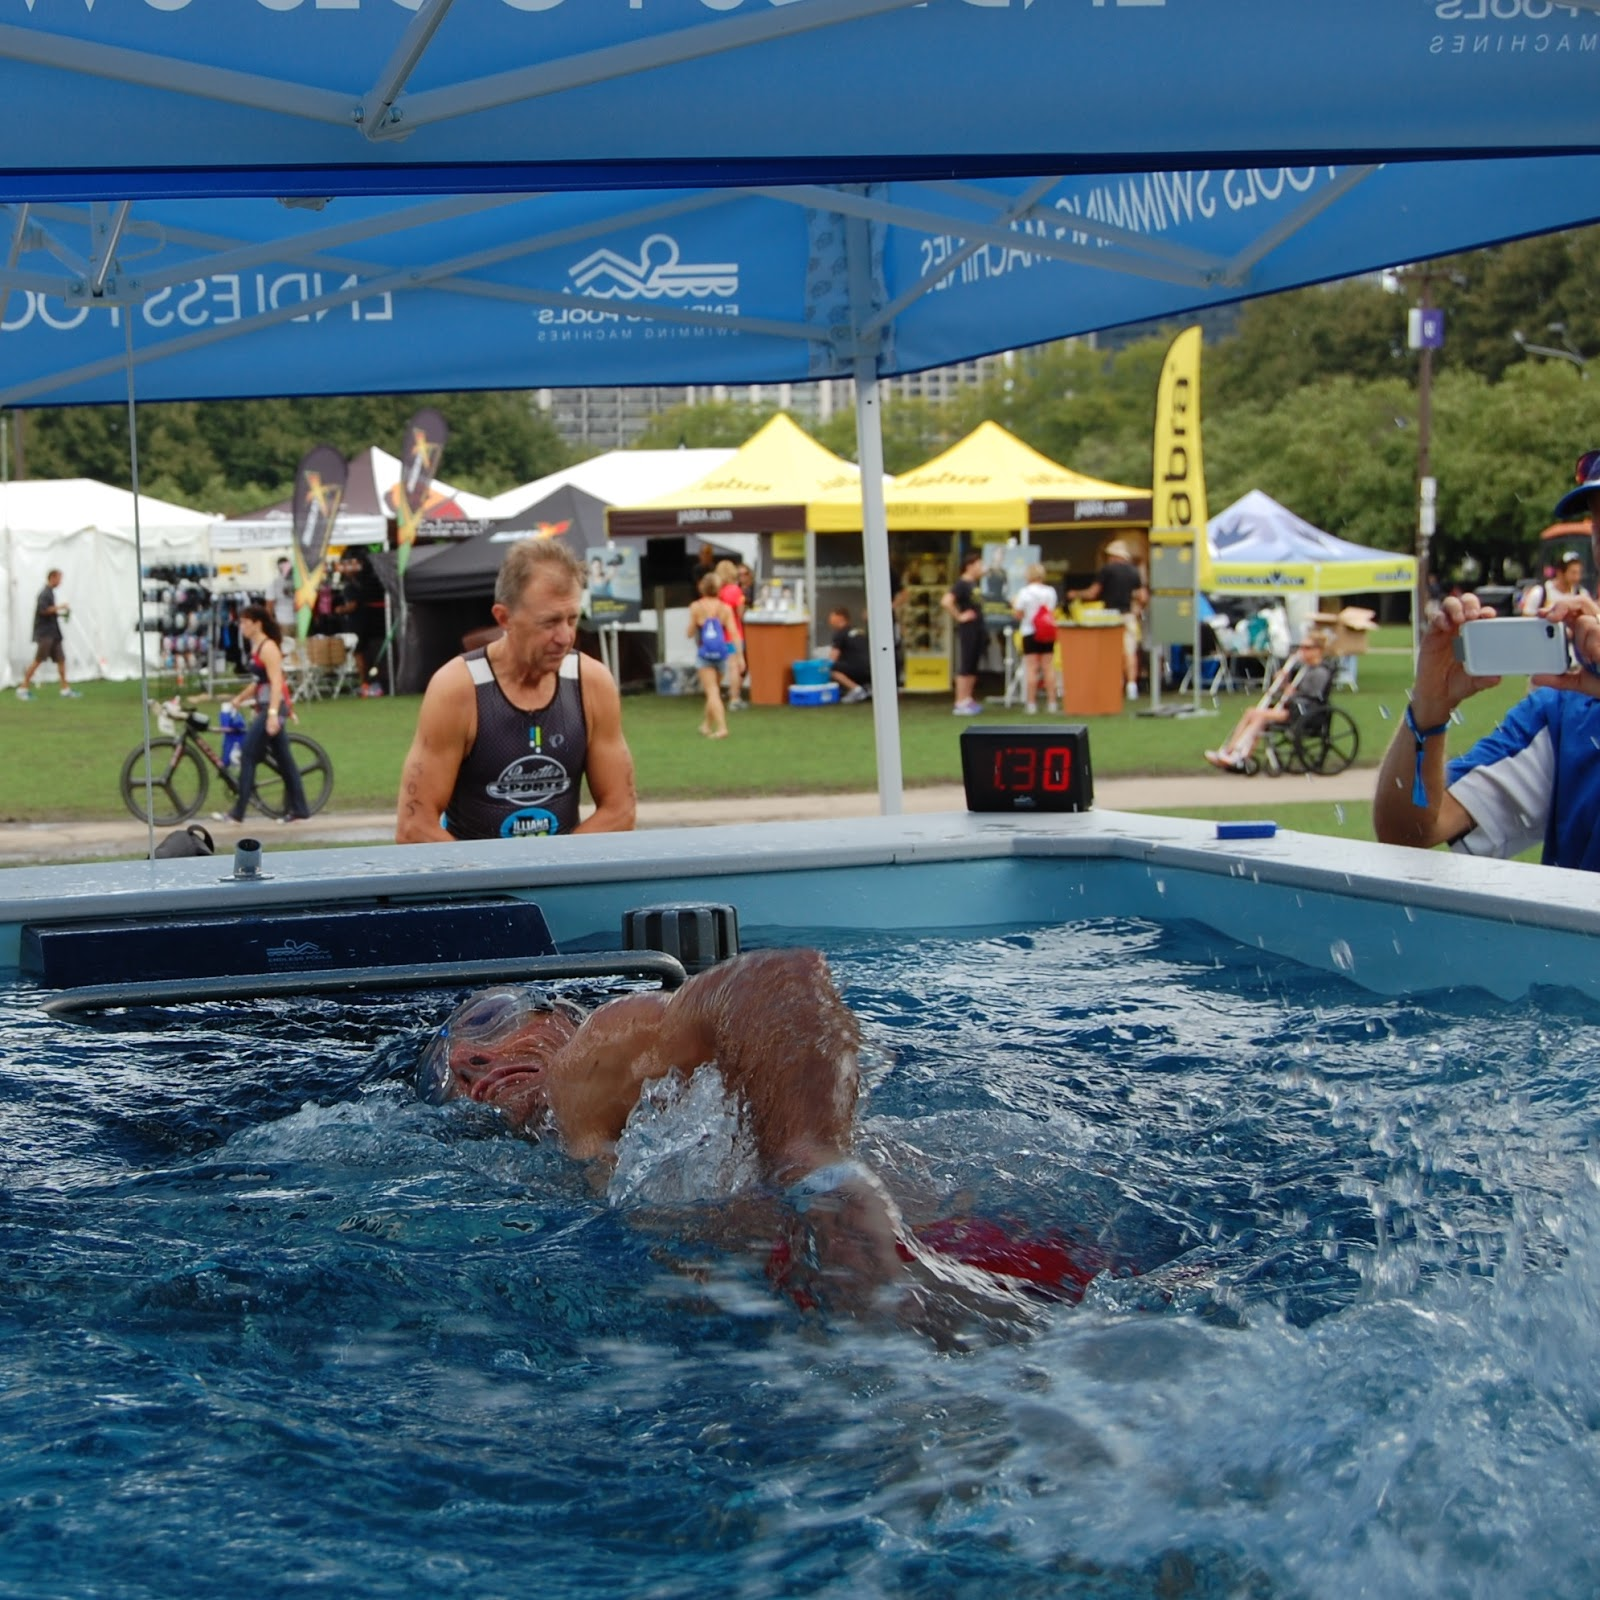 Pool with current to swim against - Test Swimming In The High Performance Endless Pool At A Triathlon Expo